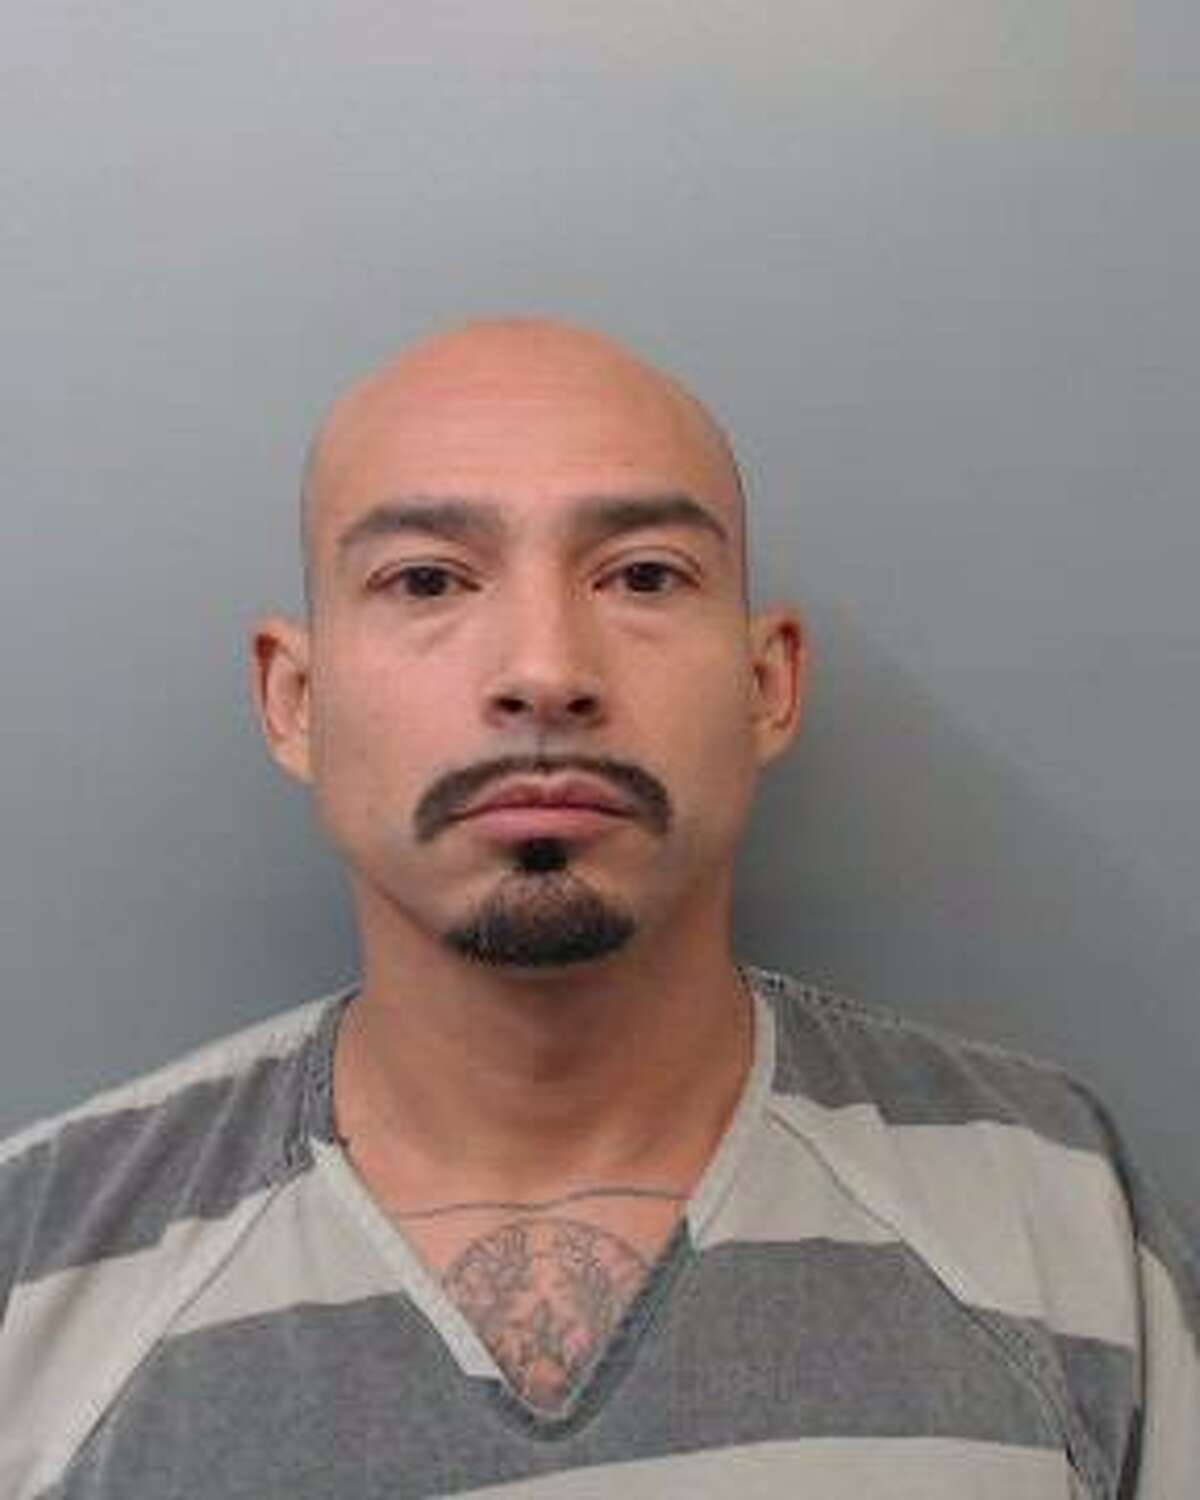 S. Marshals arrested Justin David Lopez, 39, on Friday. He is accused of fatally shooting Isaac Ybarra, 34, in Edna, Texas, on Nov. 5.